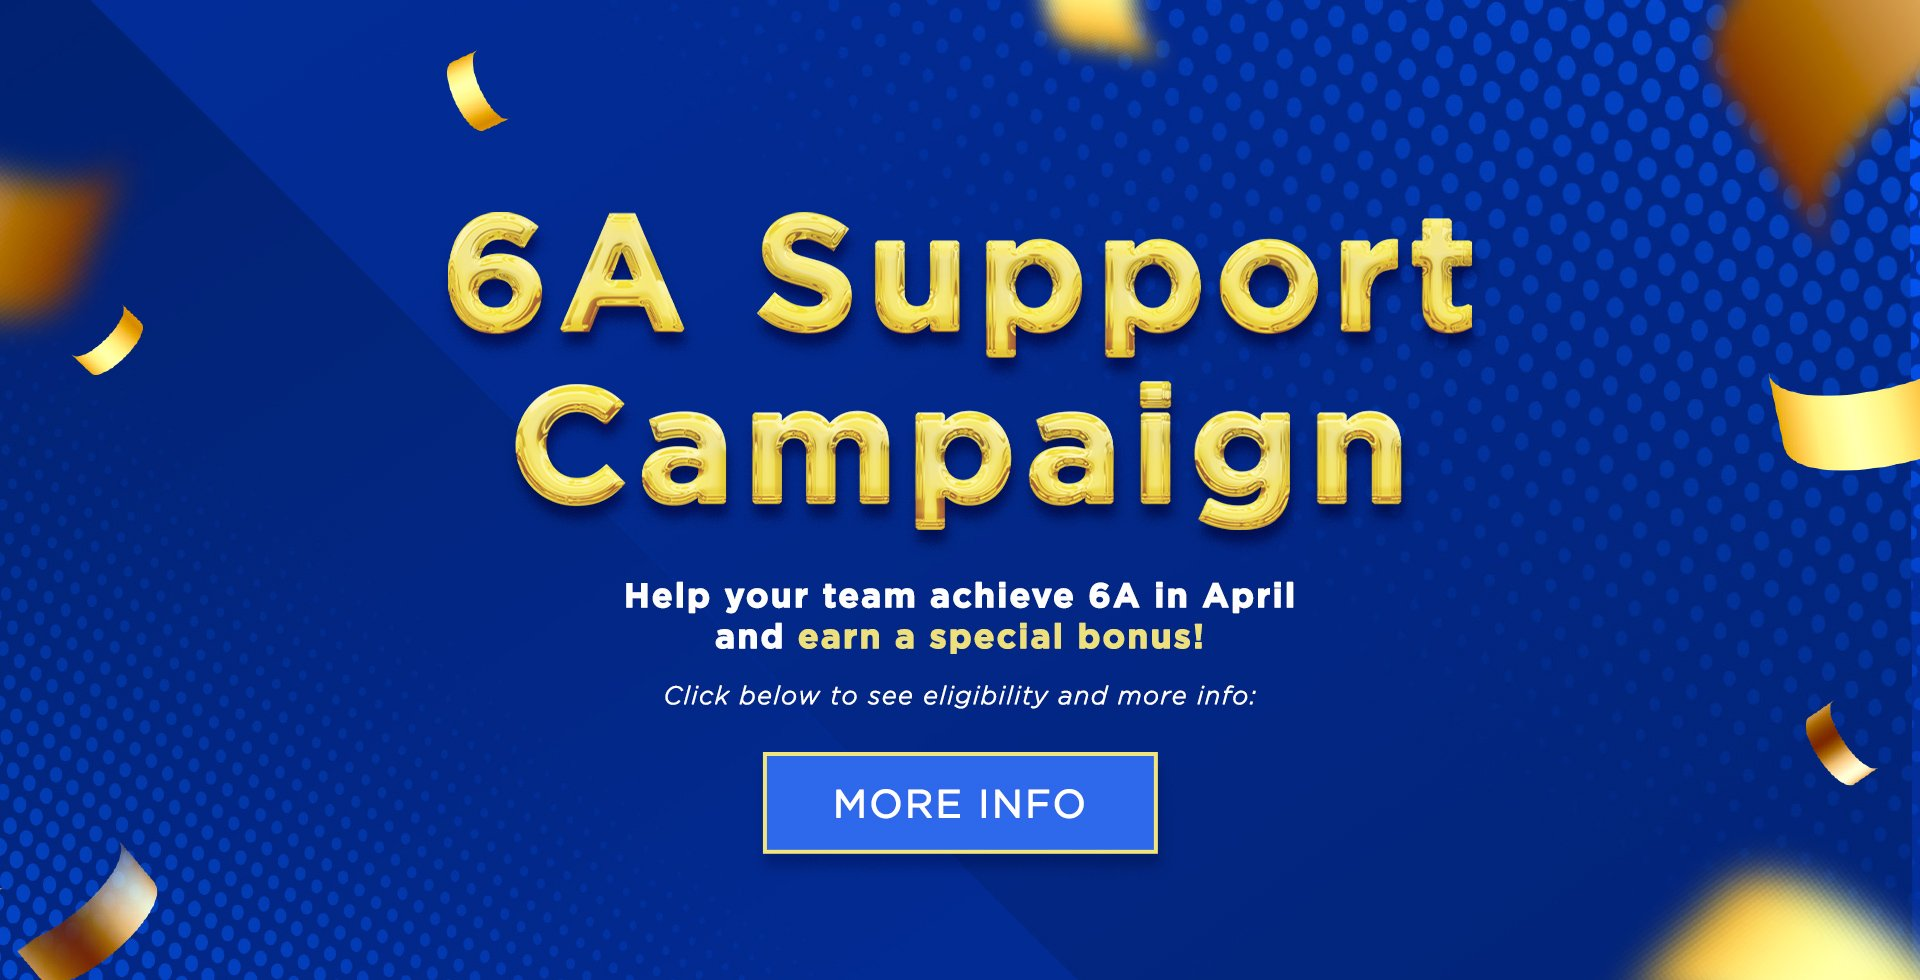 6A support campaign